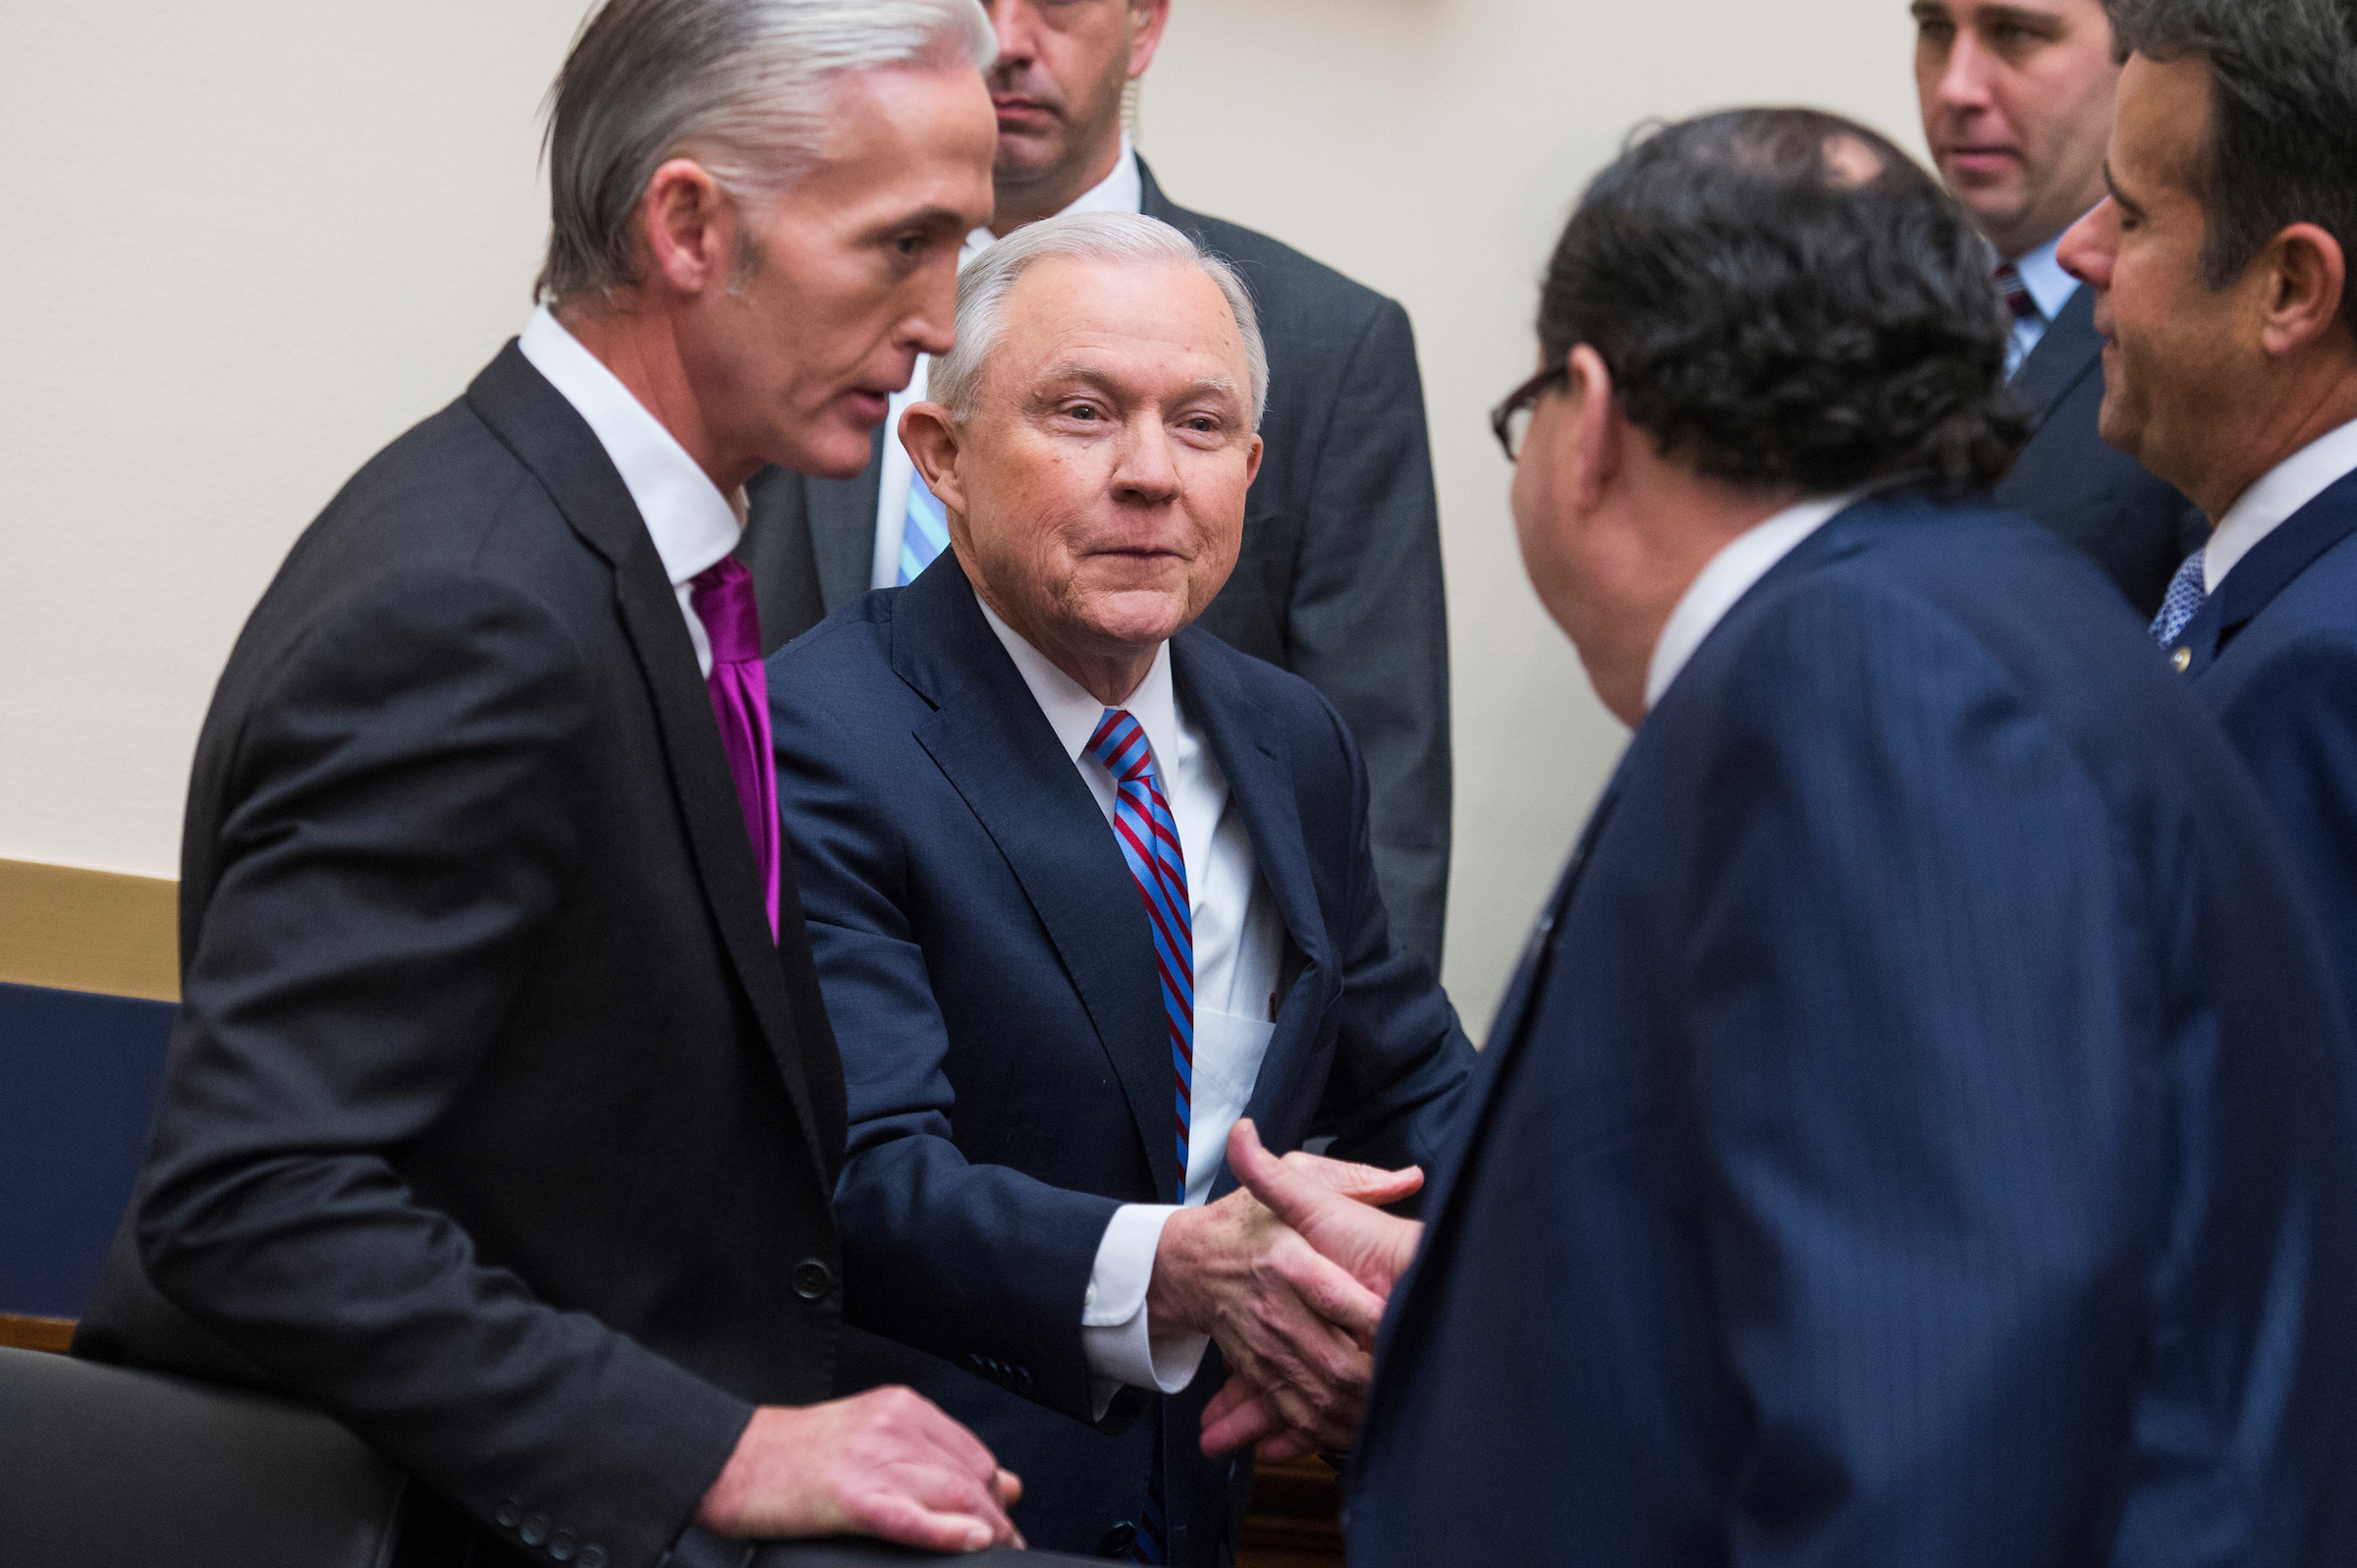 UNITED STATES - NOVEMBER 14: Attorney General Jeff Sessions greets Reps. Blake Farenthold, R-Texas, right, and Trey Gowdy, R-S.C., left, upon arriving to testify before a House Judiciary Committee hearing in Rayburn Building on November 14, 2017, on oversight of the Department of Justice where he fielded a variety of questions including immigration and Russian meddling in the 2016 election. (Photo By Tom Williams/CQ Roll Call)